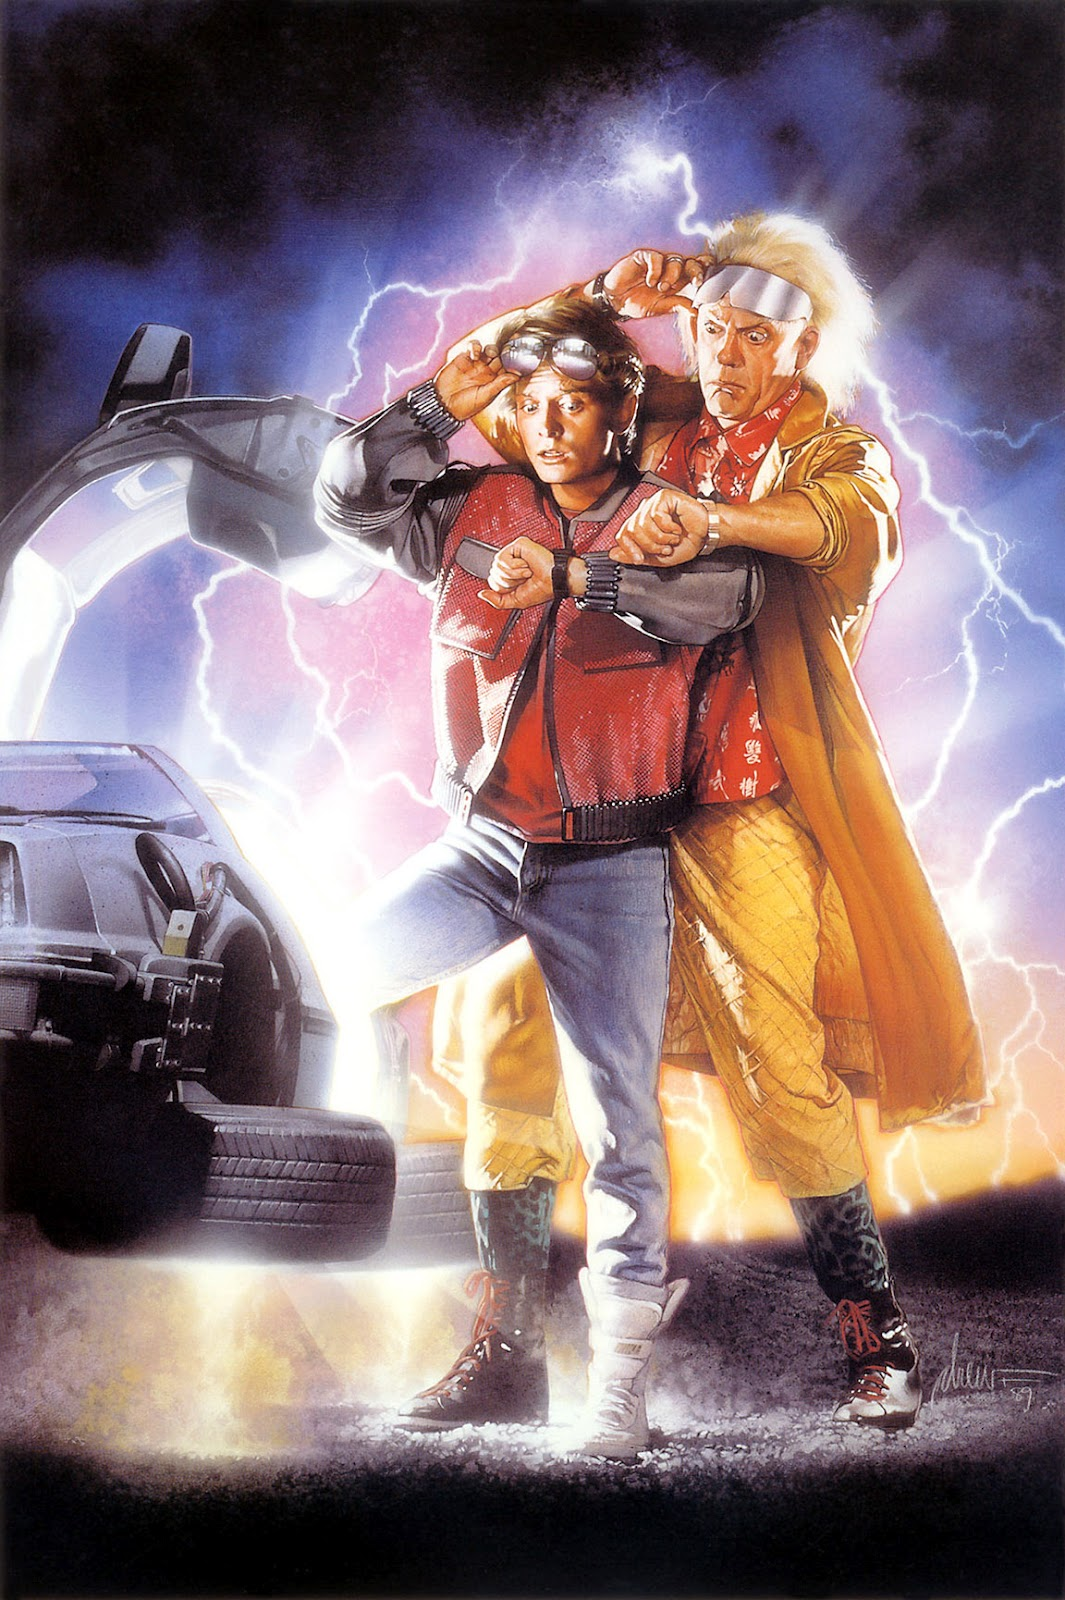 David Lloyd Derby >> The Geeky Nerfherder: Movie Poster Art: Back To The Future Part II (1989)